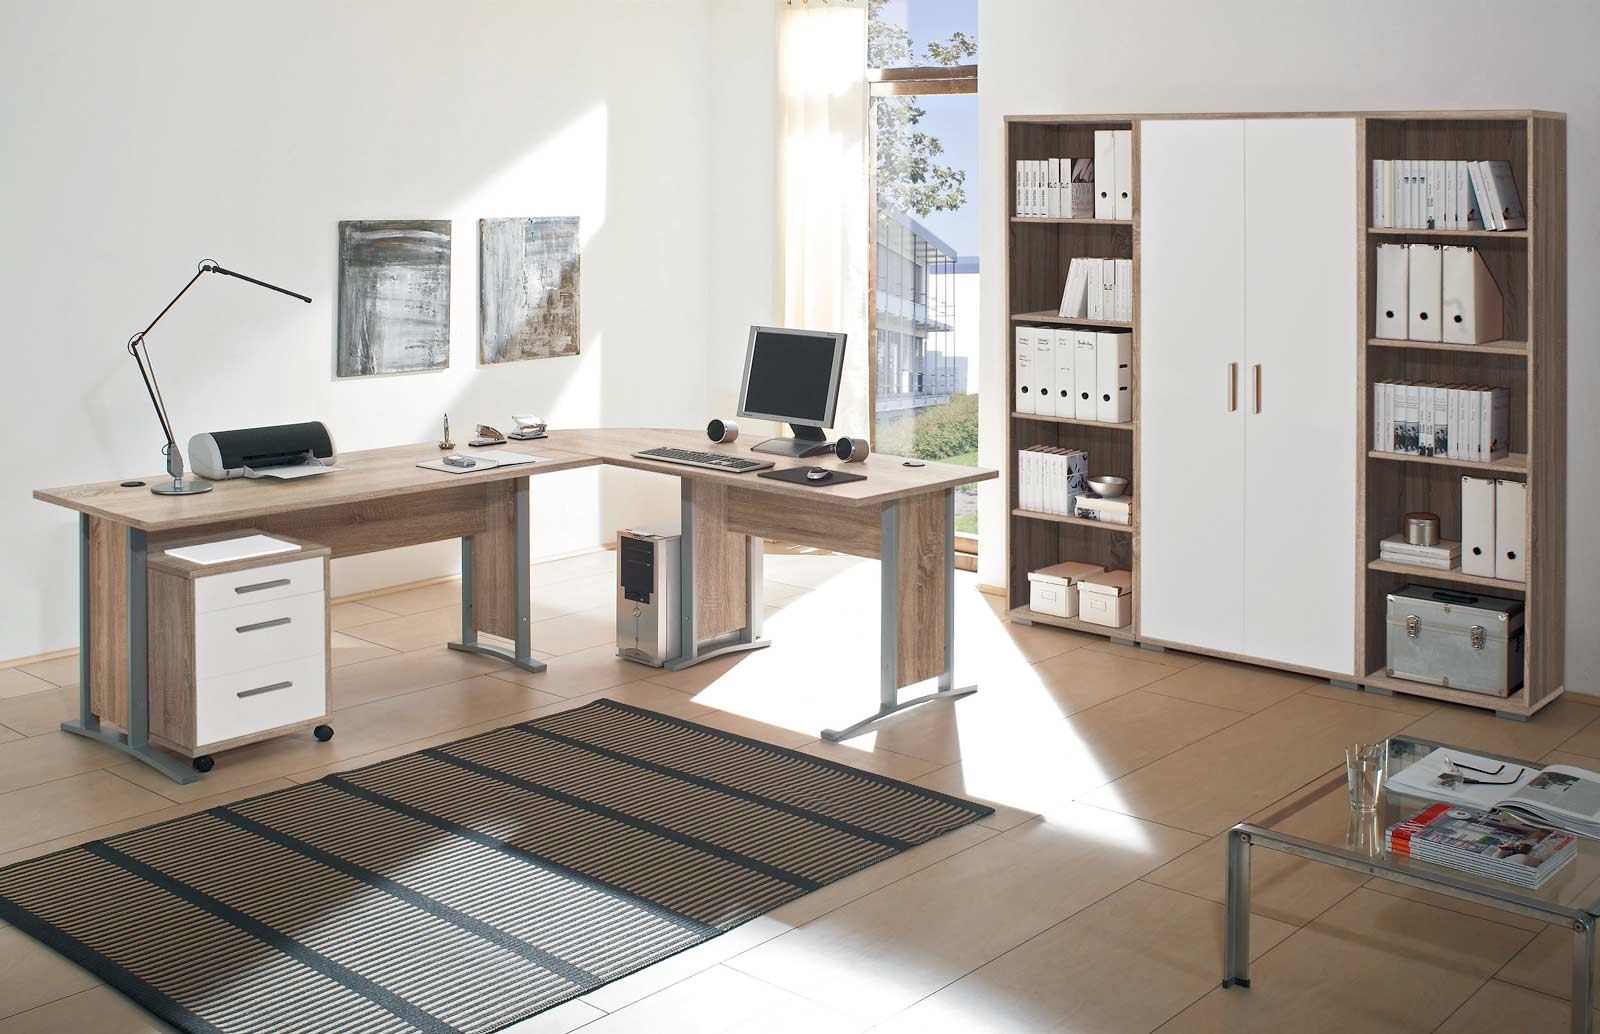 arbeitszimmer b rom bel b roeinrichtung b ro komplett office line mit highboard ebay. Black Bedroom Furniture Sets. Home Design Ideas